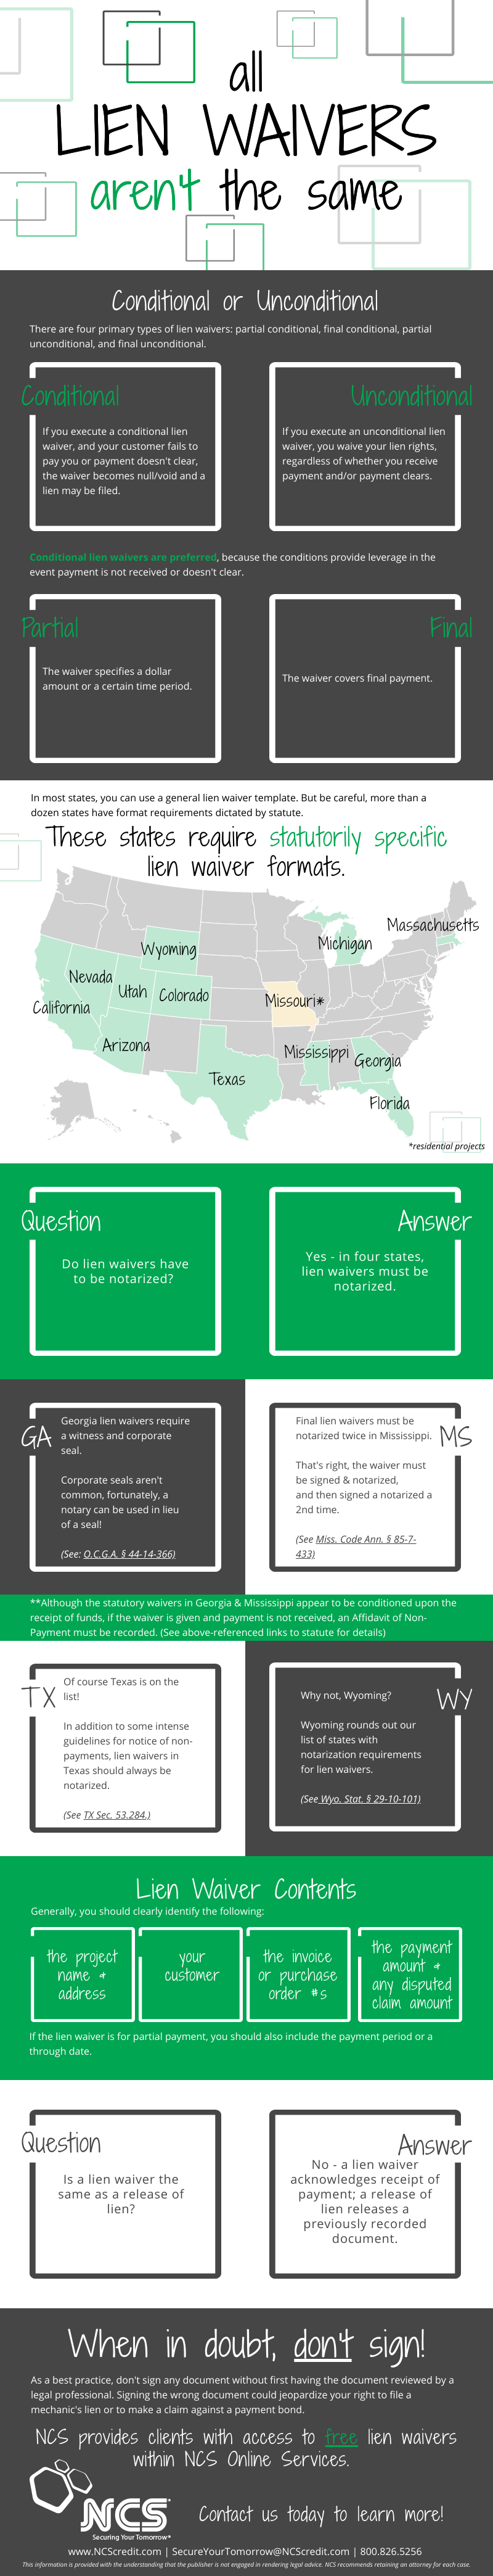 Infographic: All Lien Waivers Aren't the Same